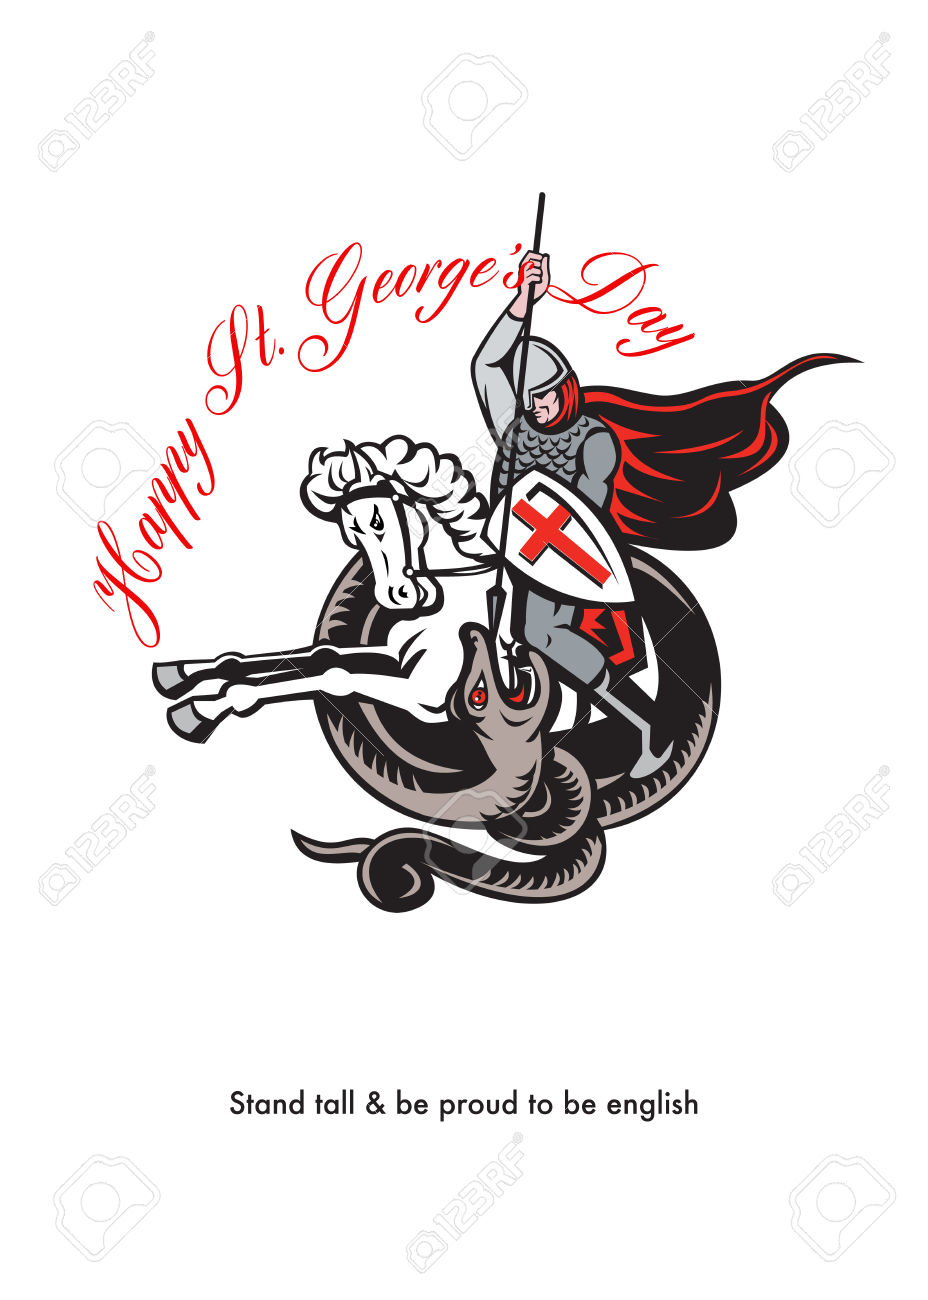 Poster Greeting Card Illustration Of Knight In Full Armor Fighting.